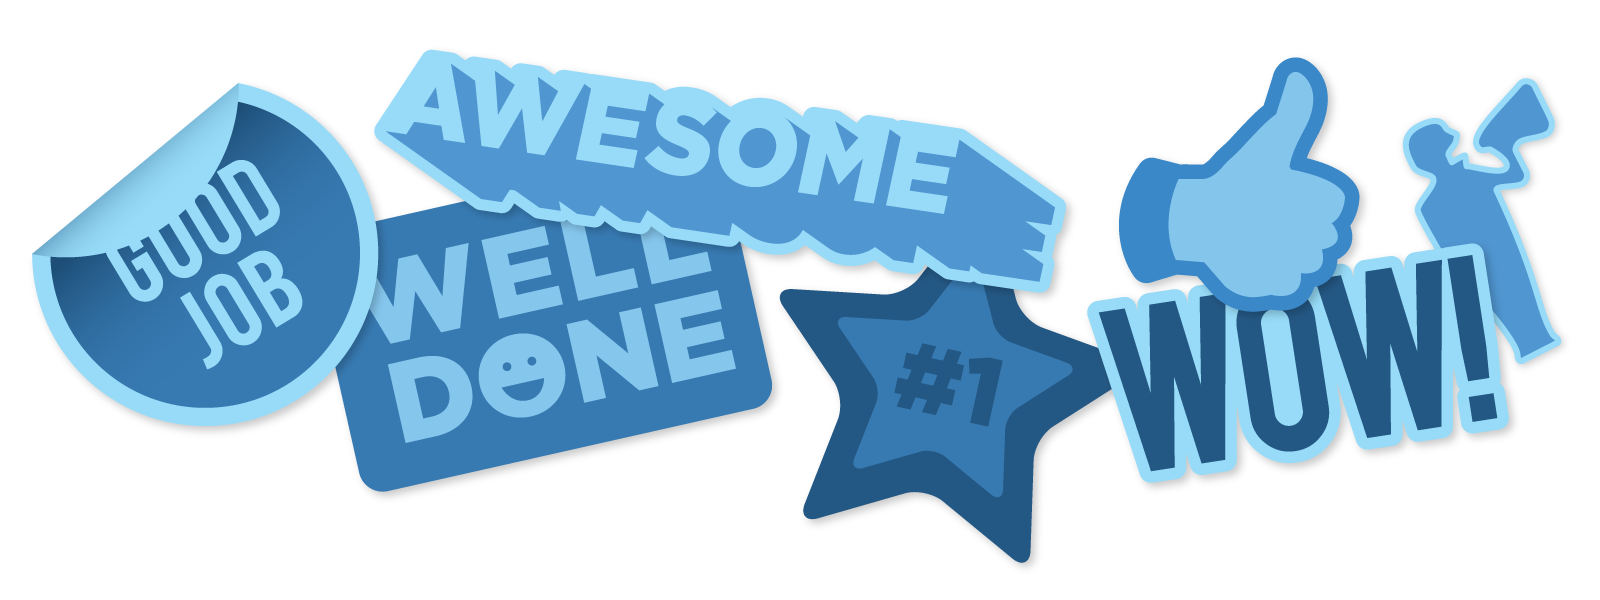 recognition png 7 png image